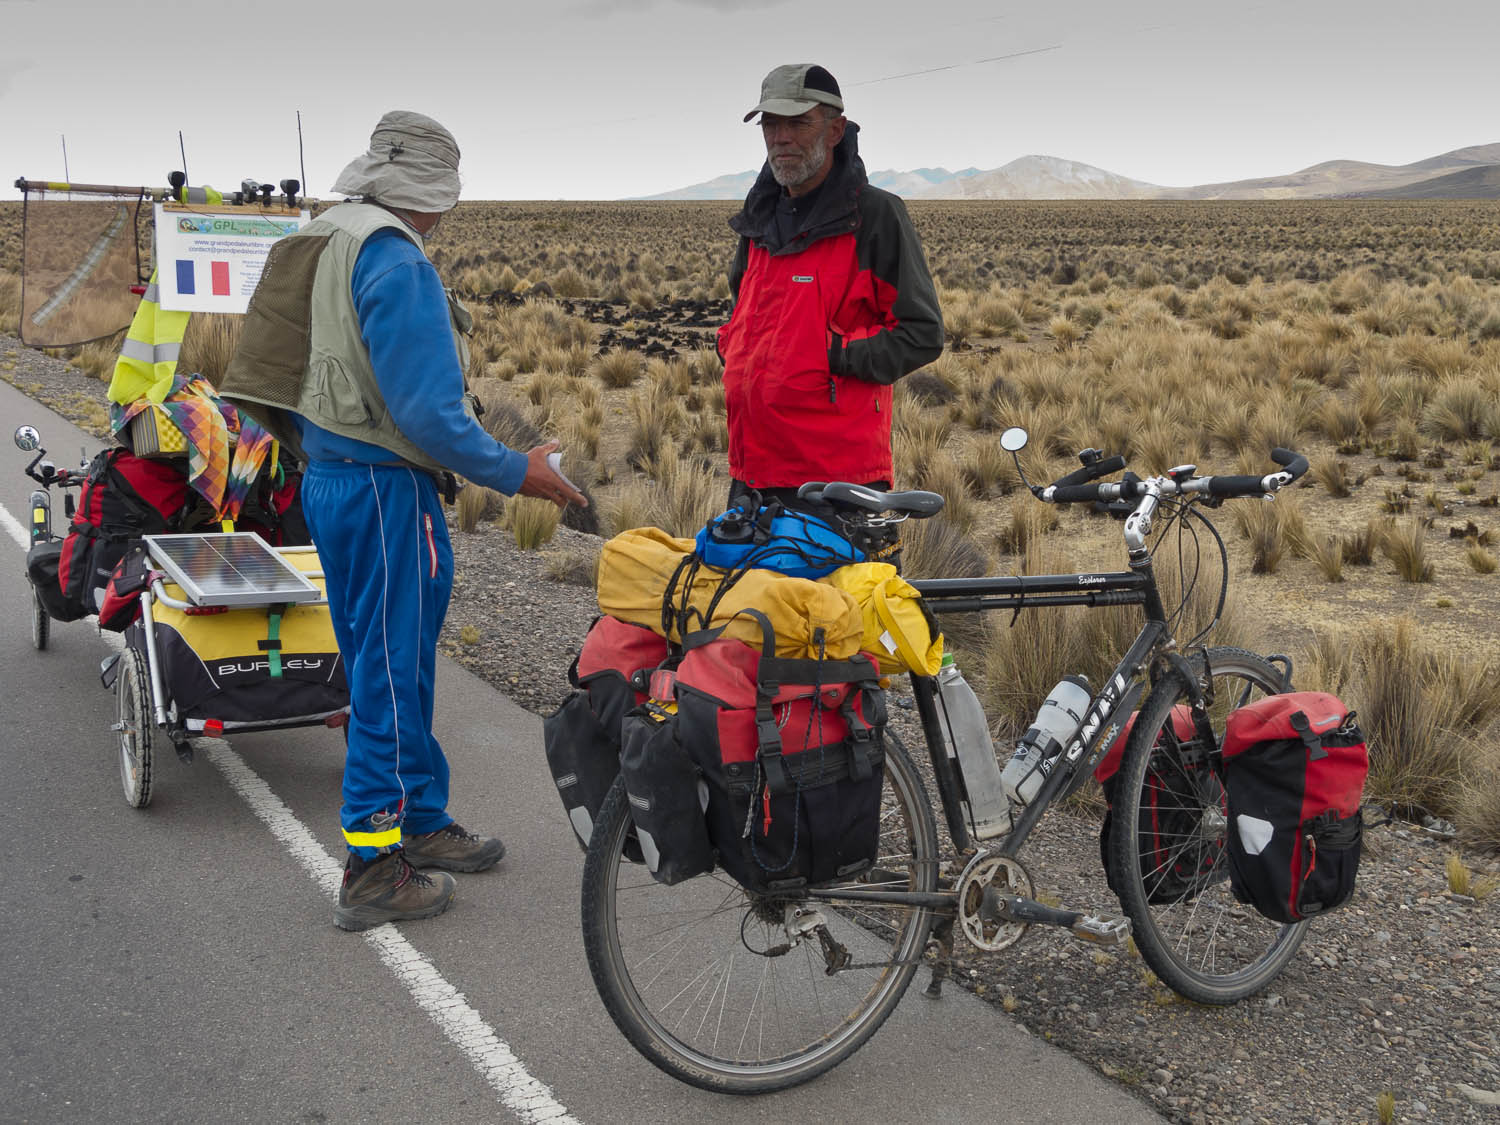 Meeting a French recumbent cyclist just coming from Chili